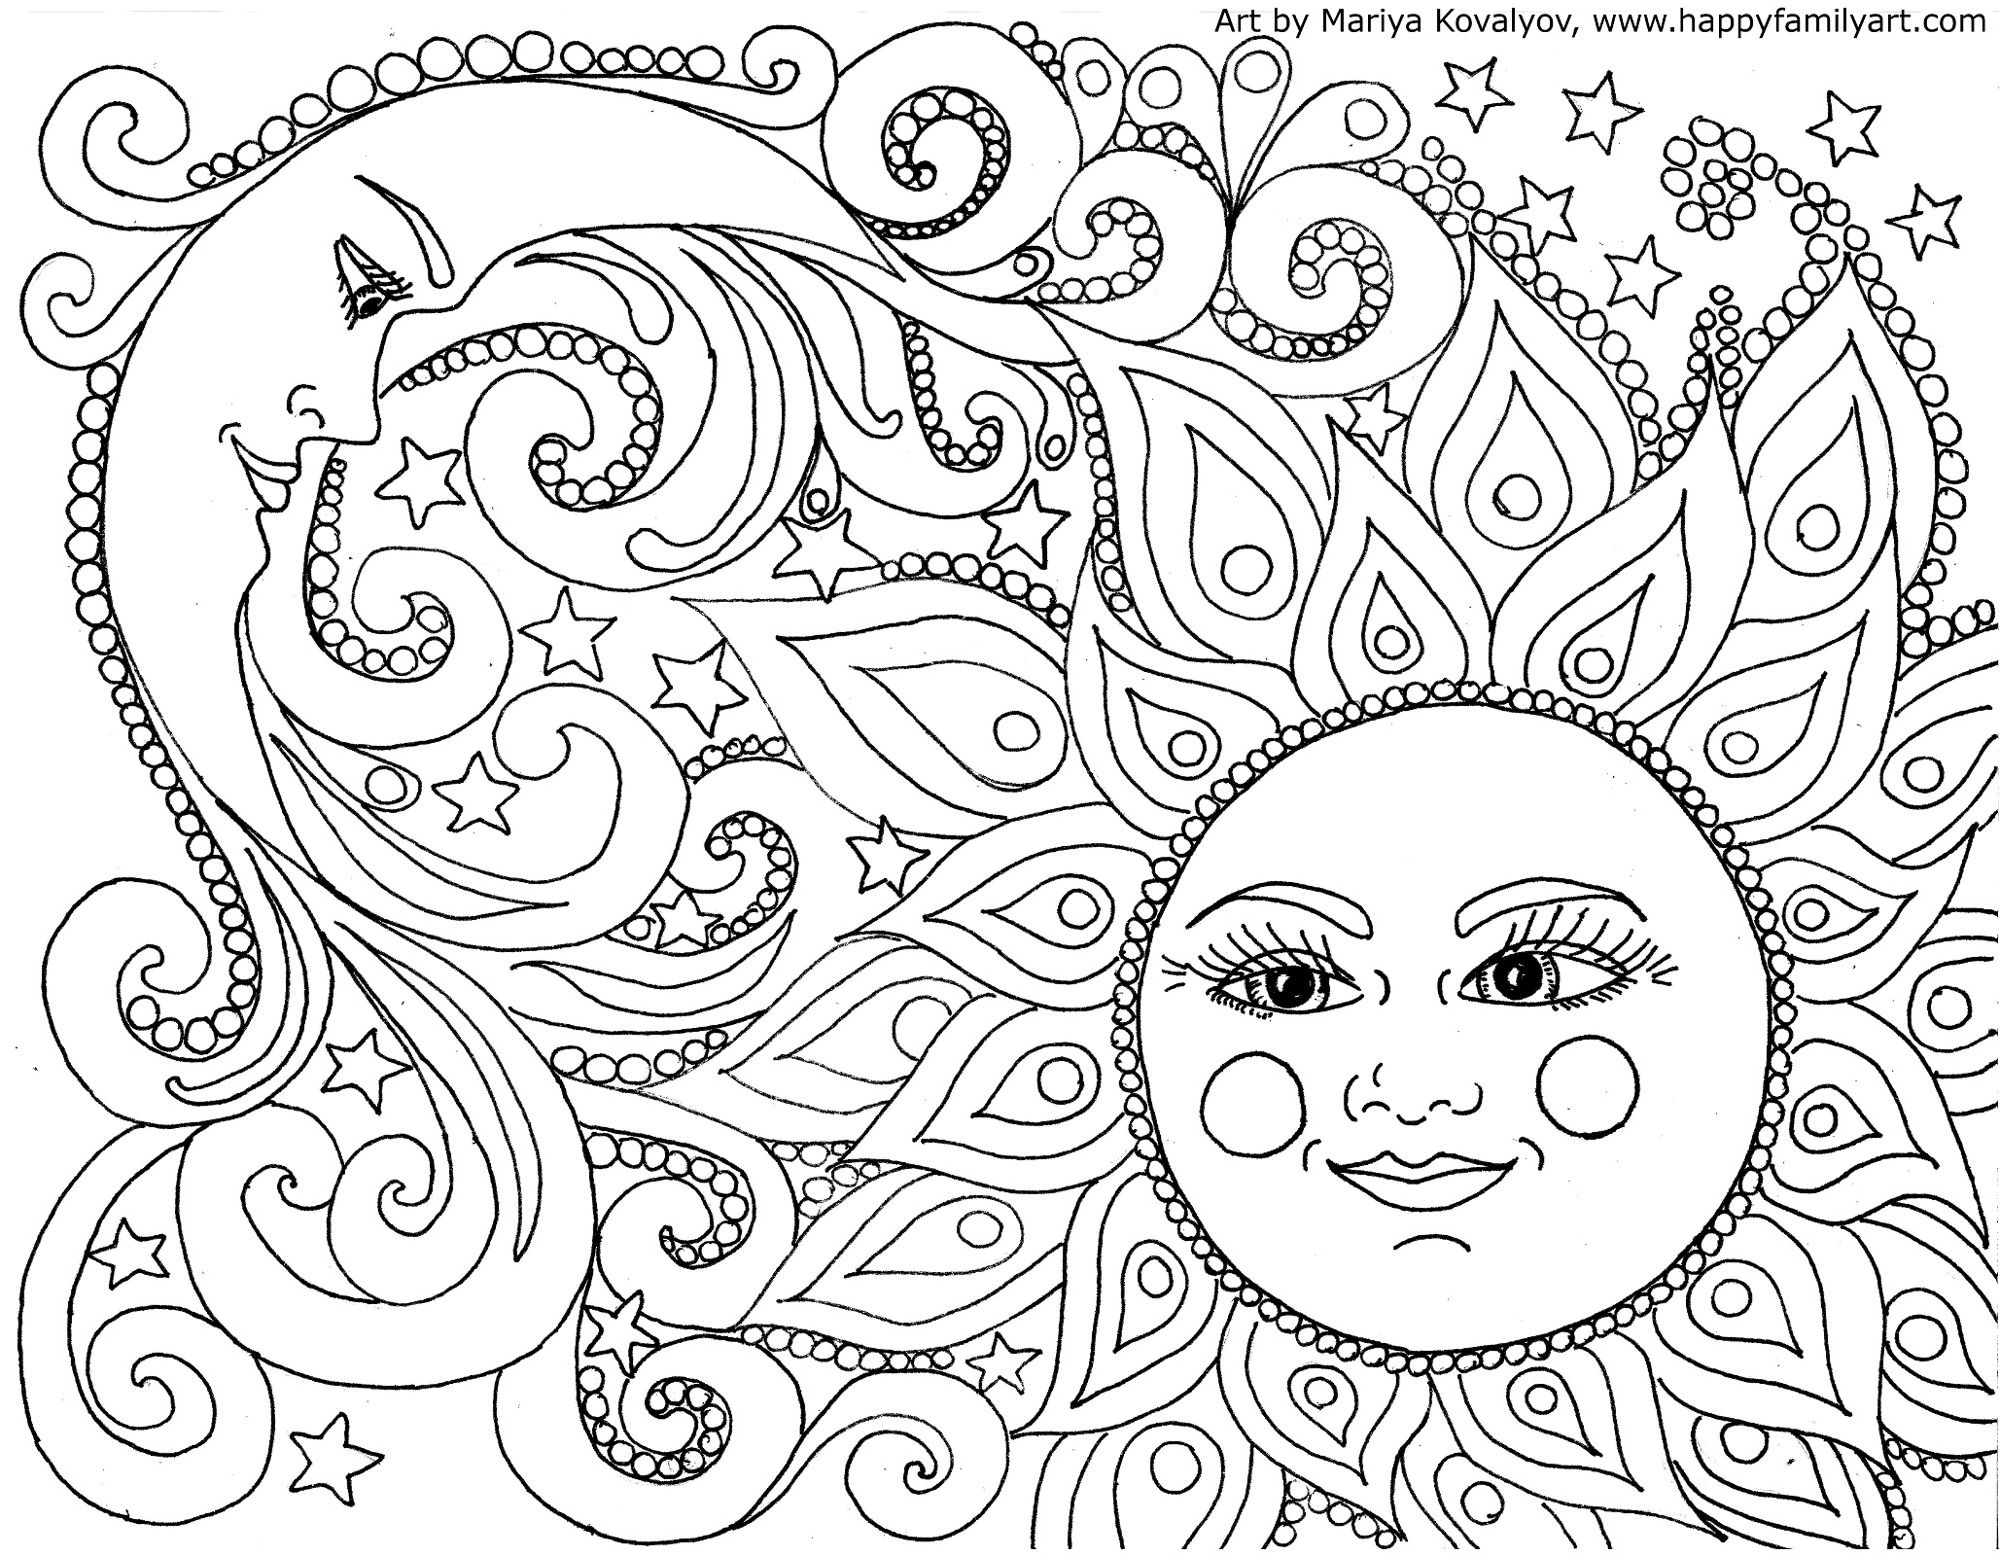 Coloring pictures for adults - I Made Many Great Fun And Original Coloring Pages Color Your Heart Out